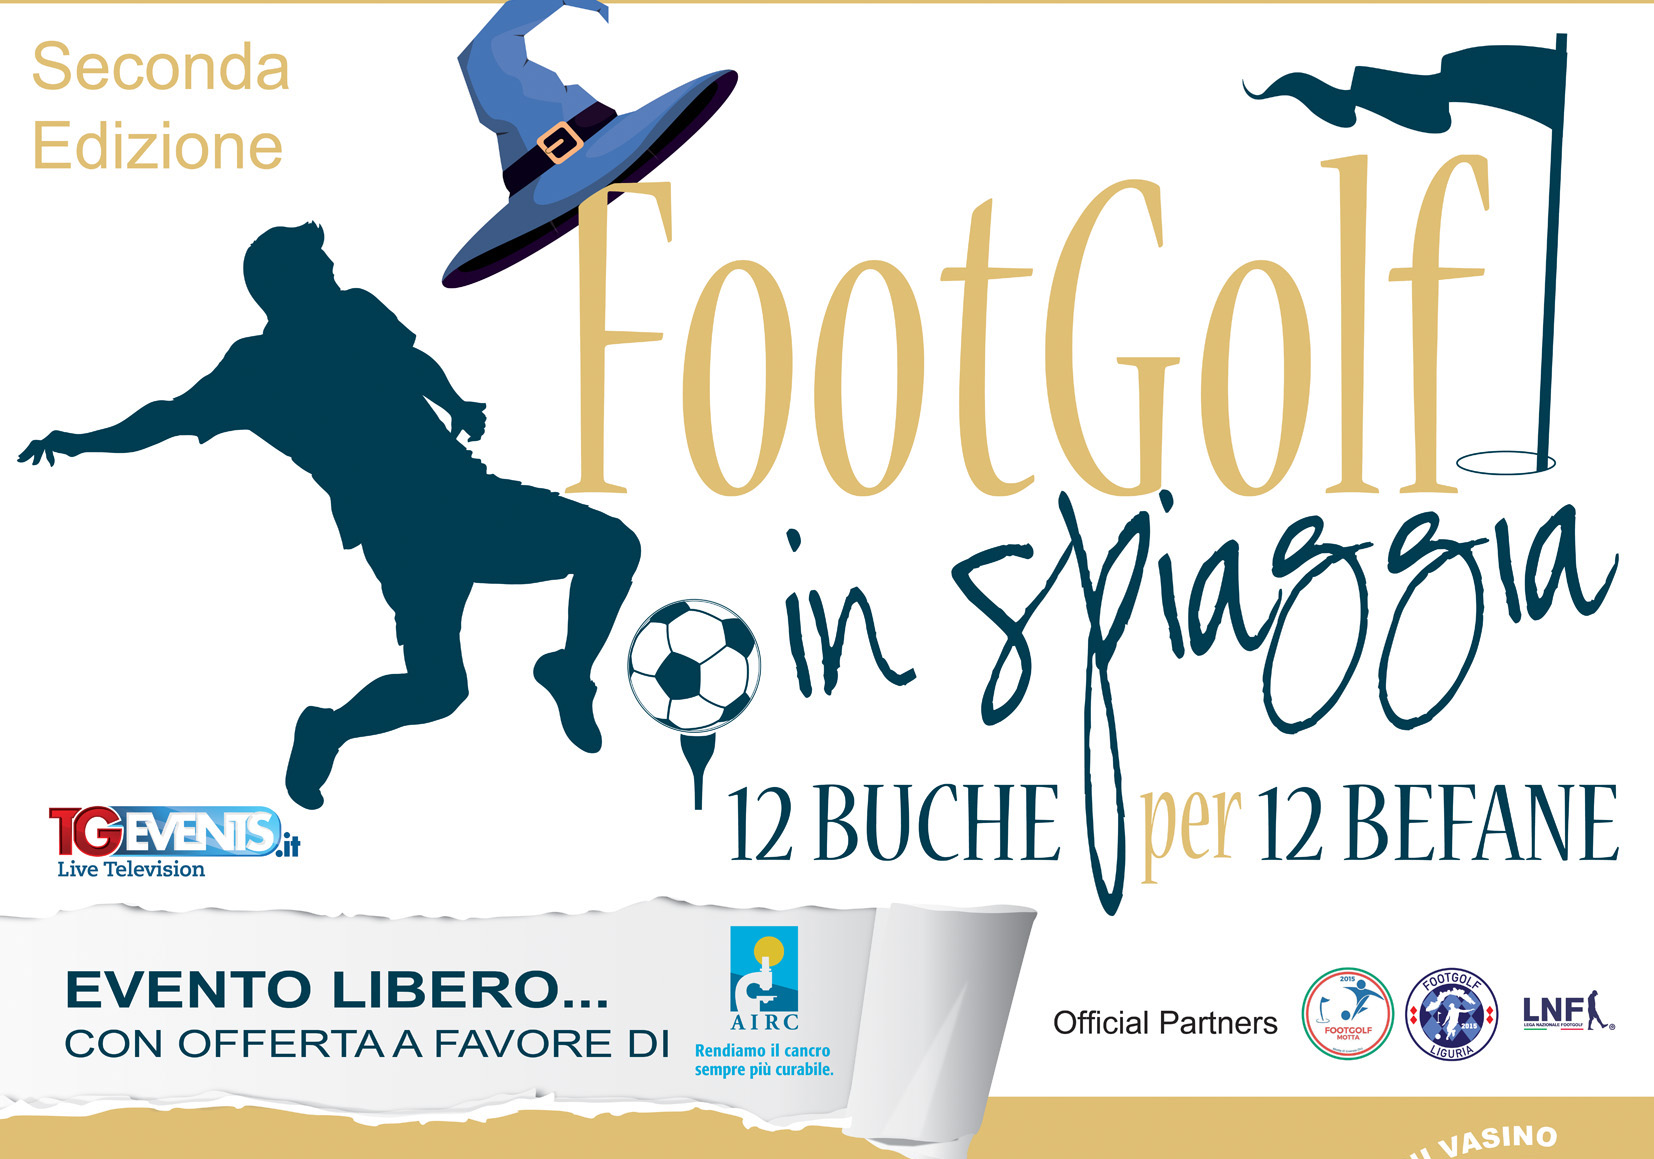 bozza-footgolf-alassio-definitivo-bassa